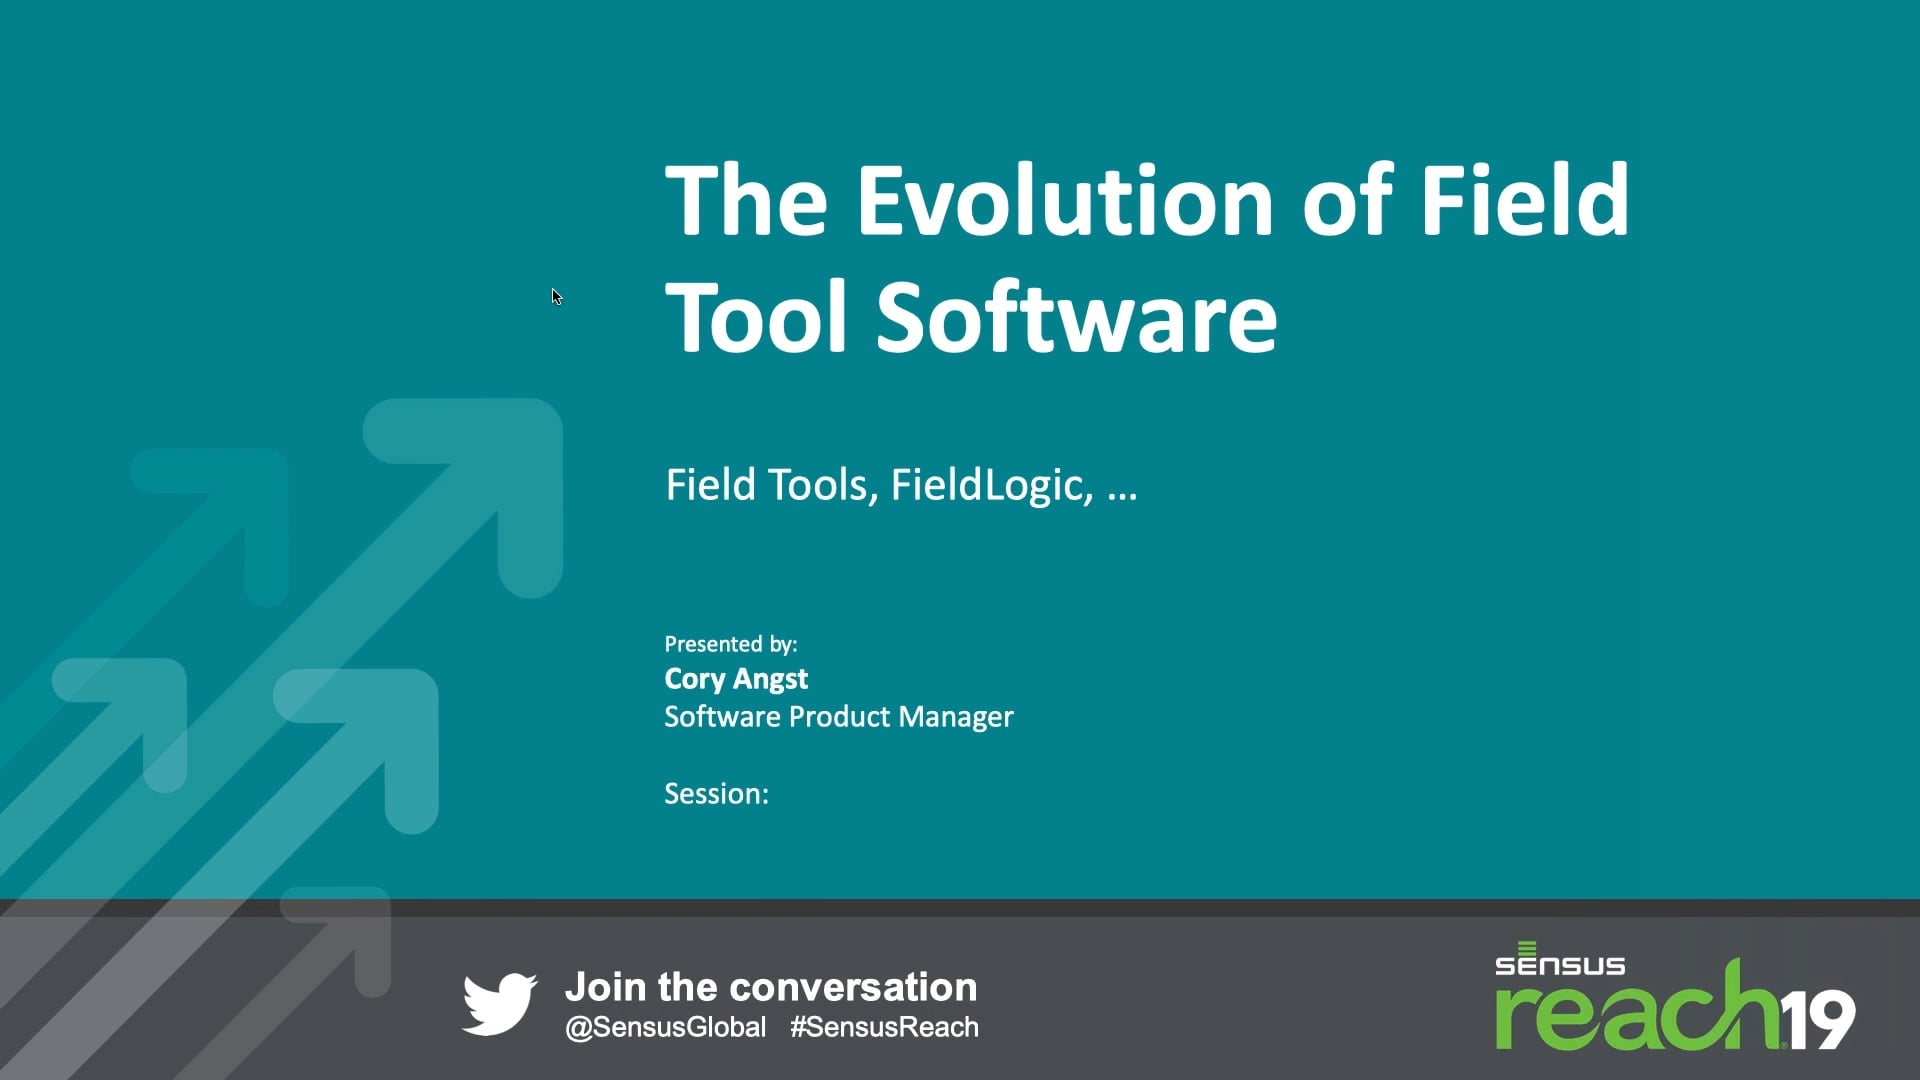 The Evolution of Field Tool Software